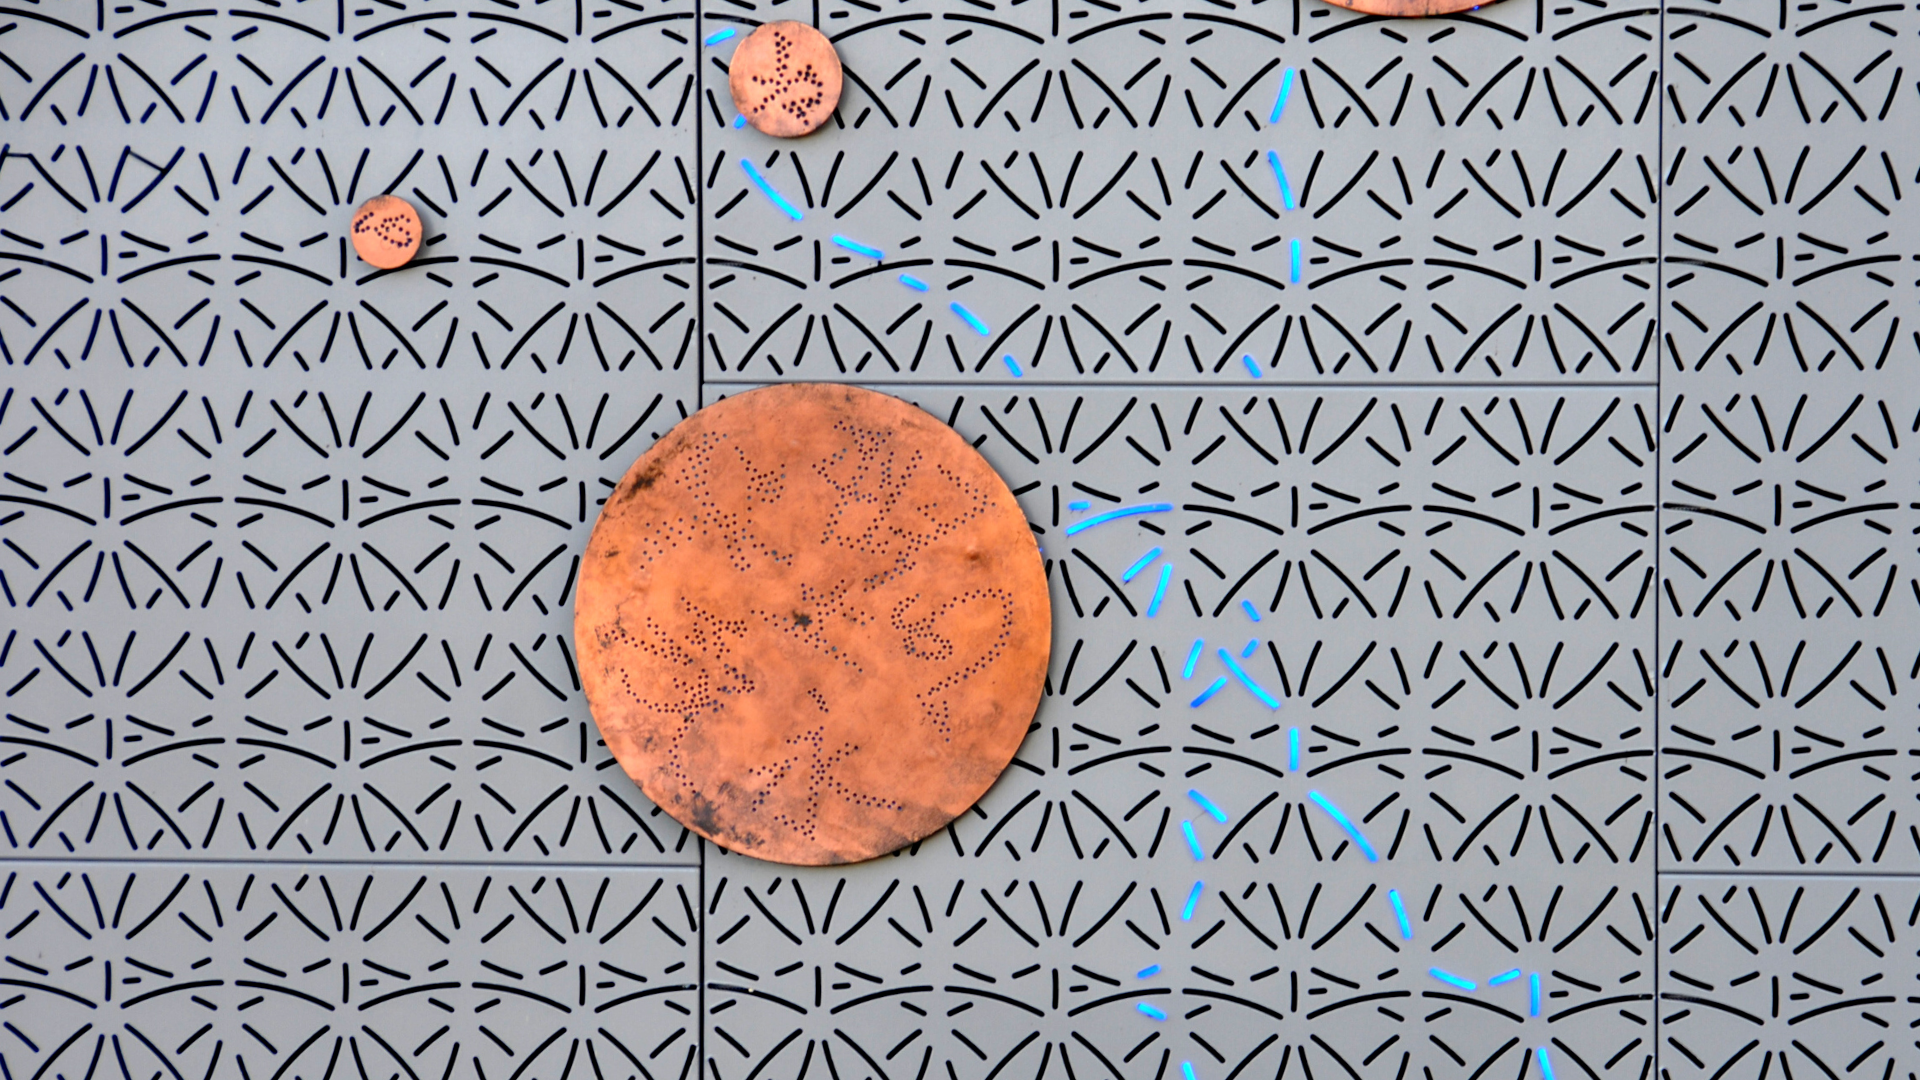 Detail-perfo-perforation-panel-allpro-copper